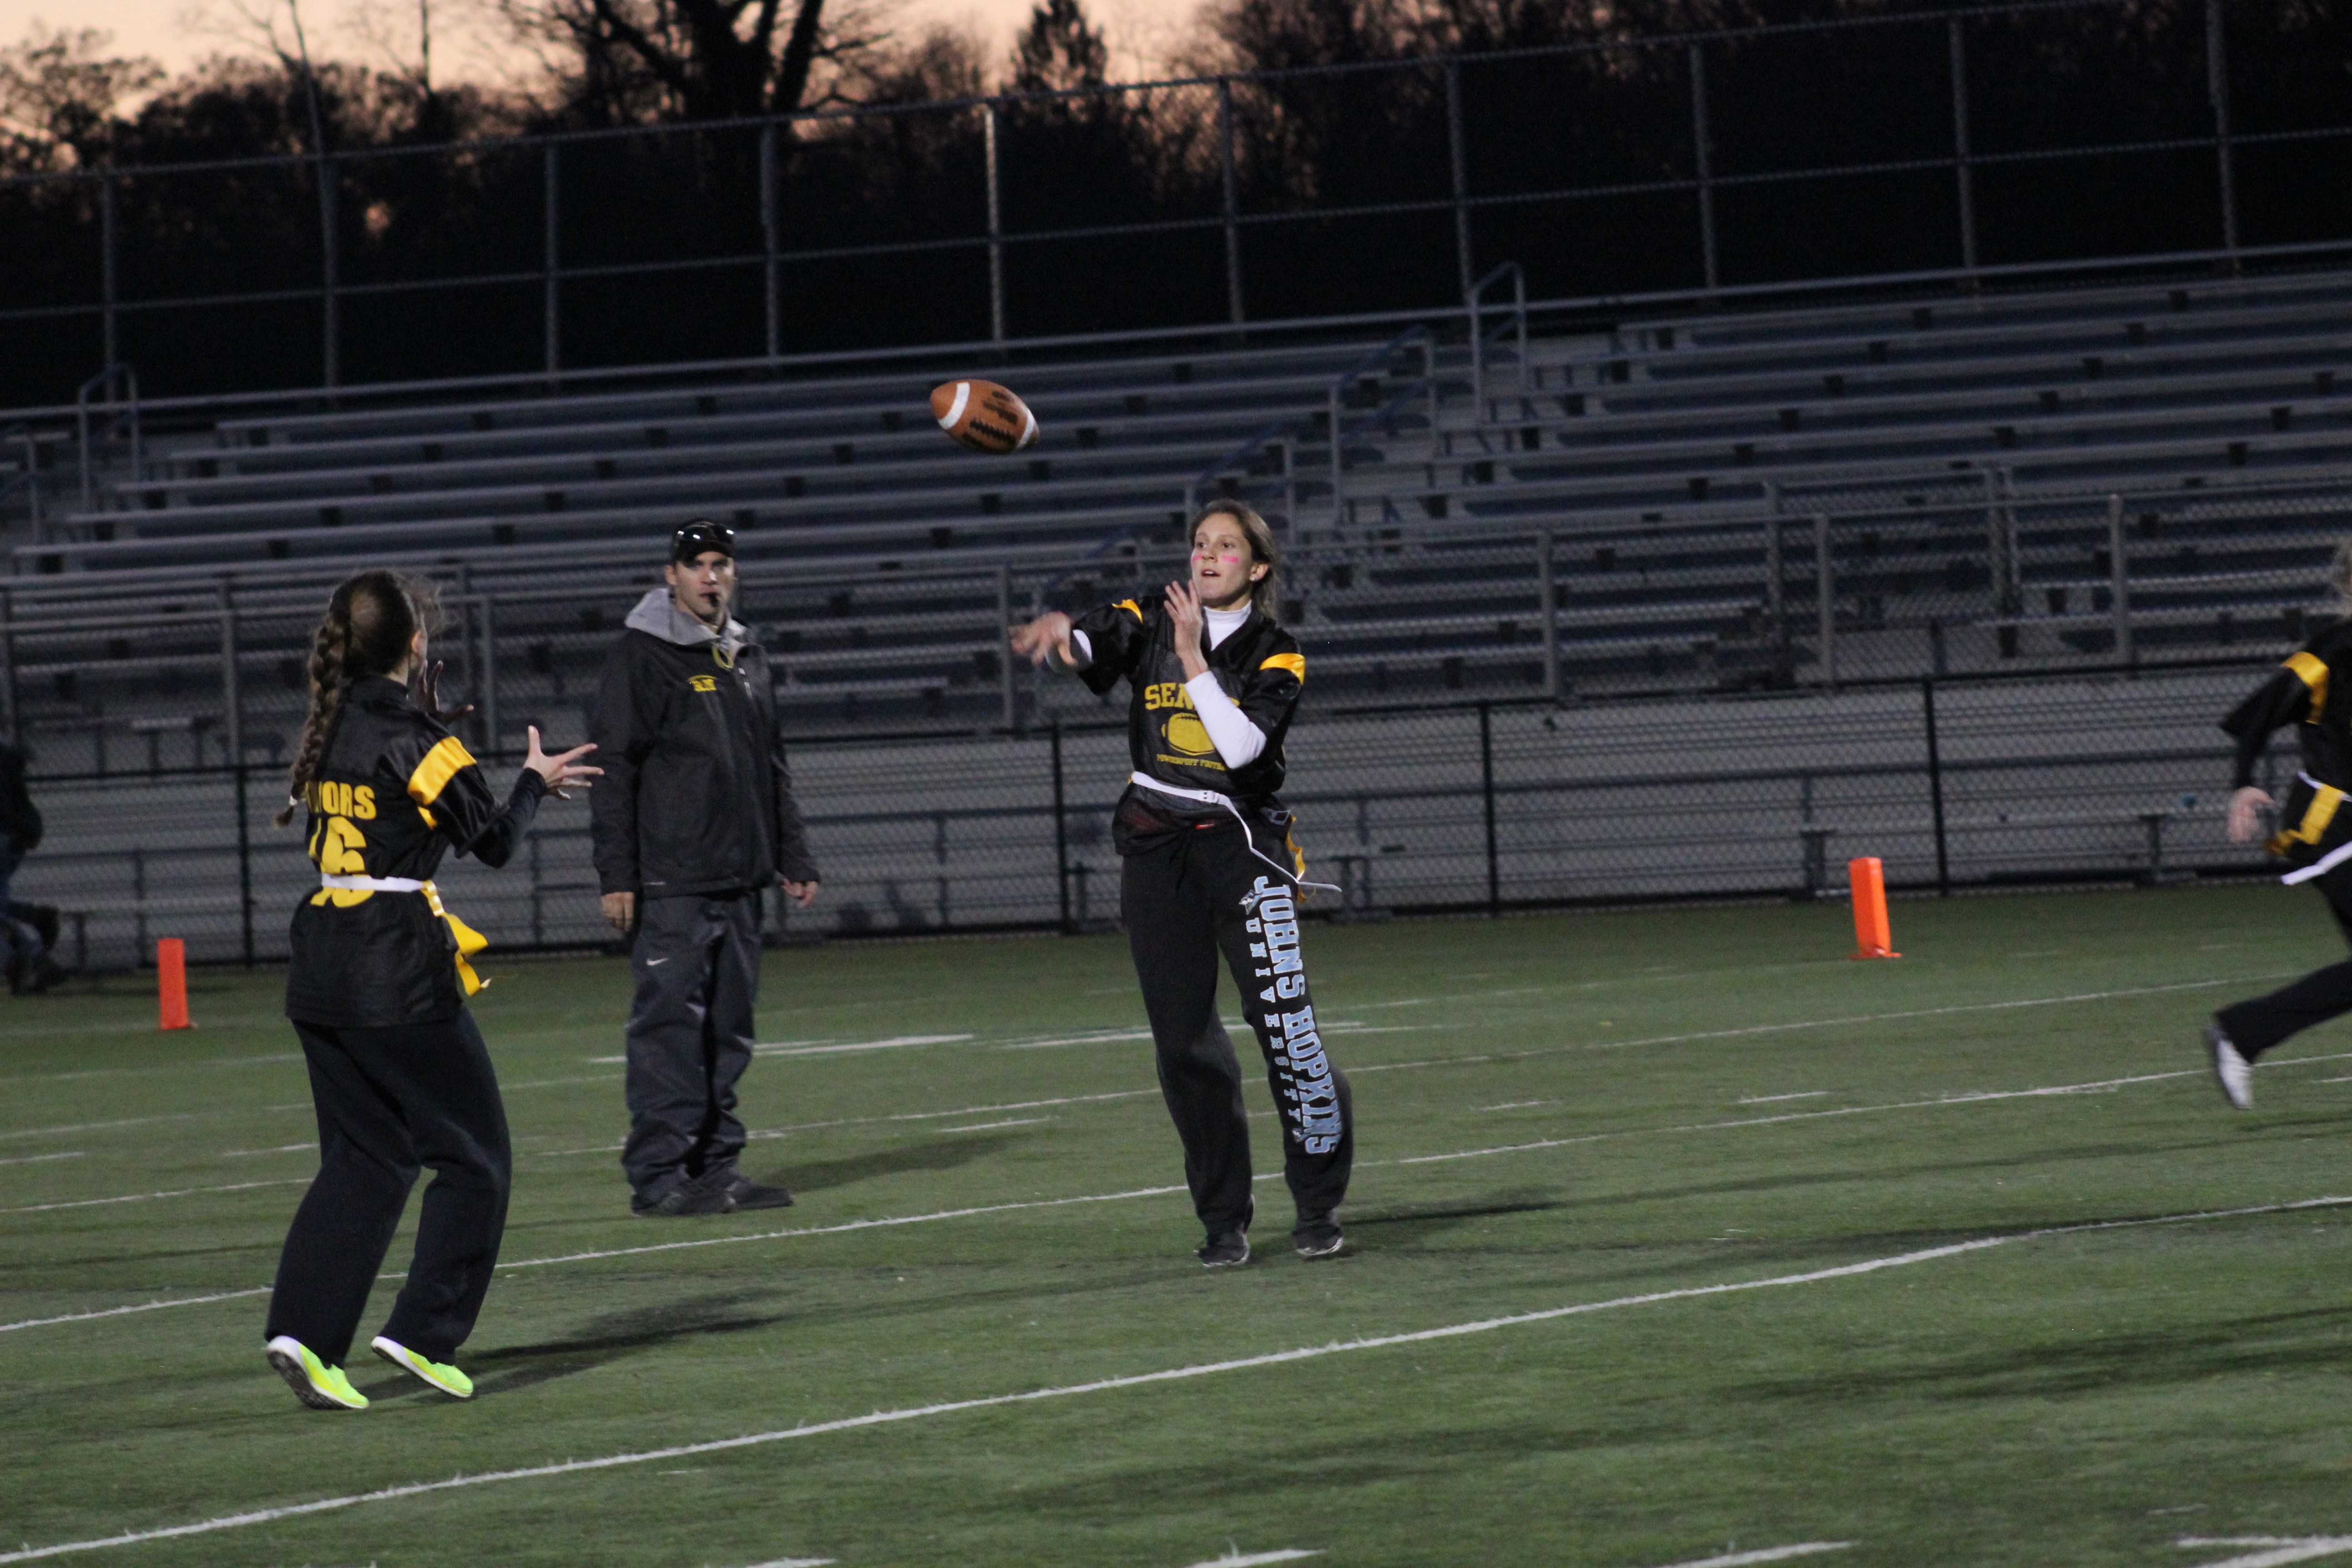 Seniors come out victorious in Powderpuff game, defeating juniors in final game